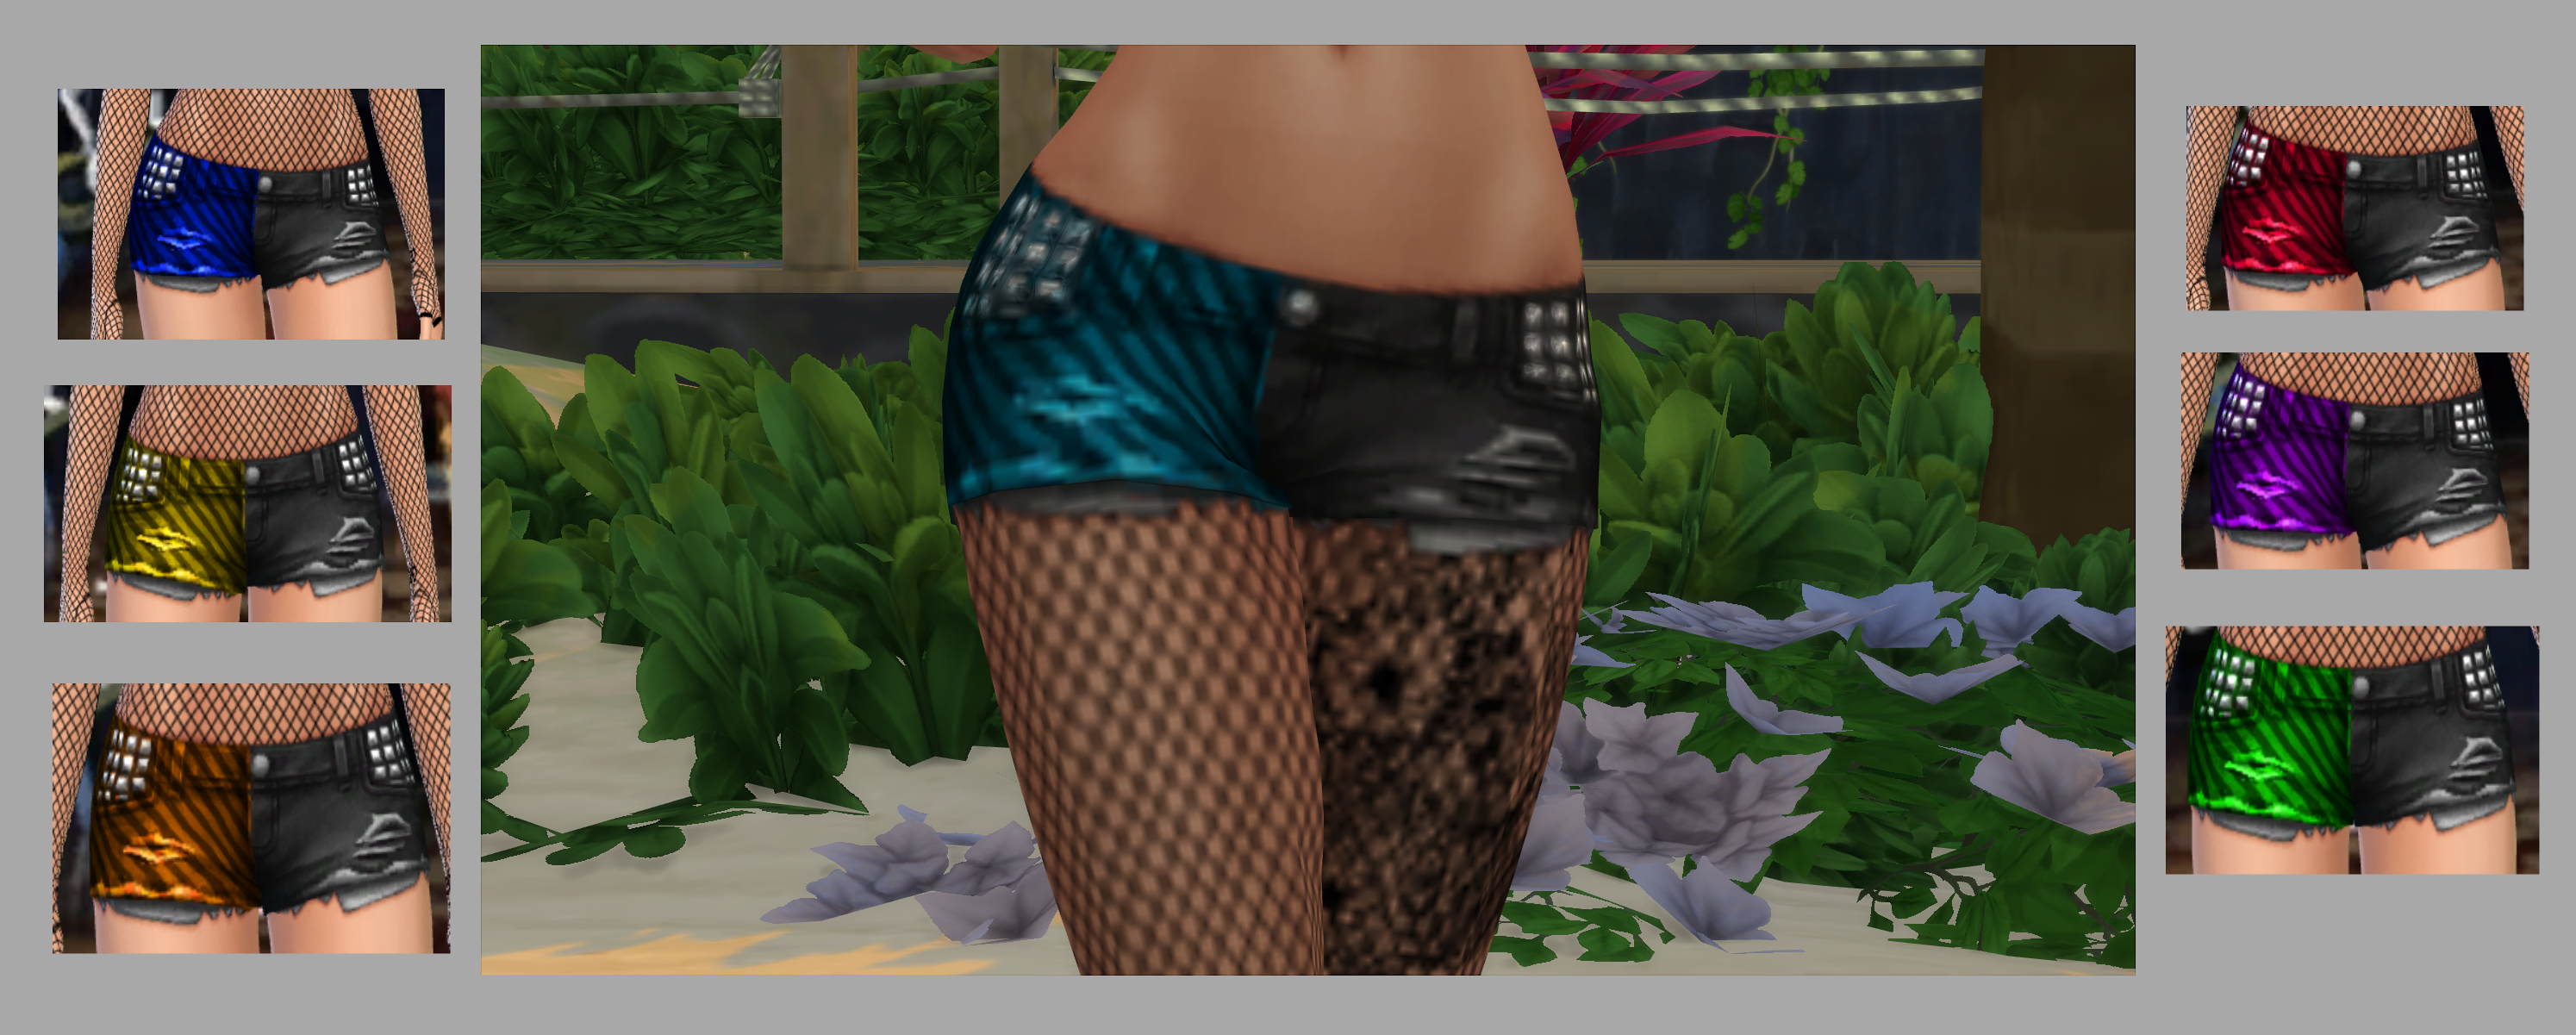 stripedshorts.png